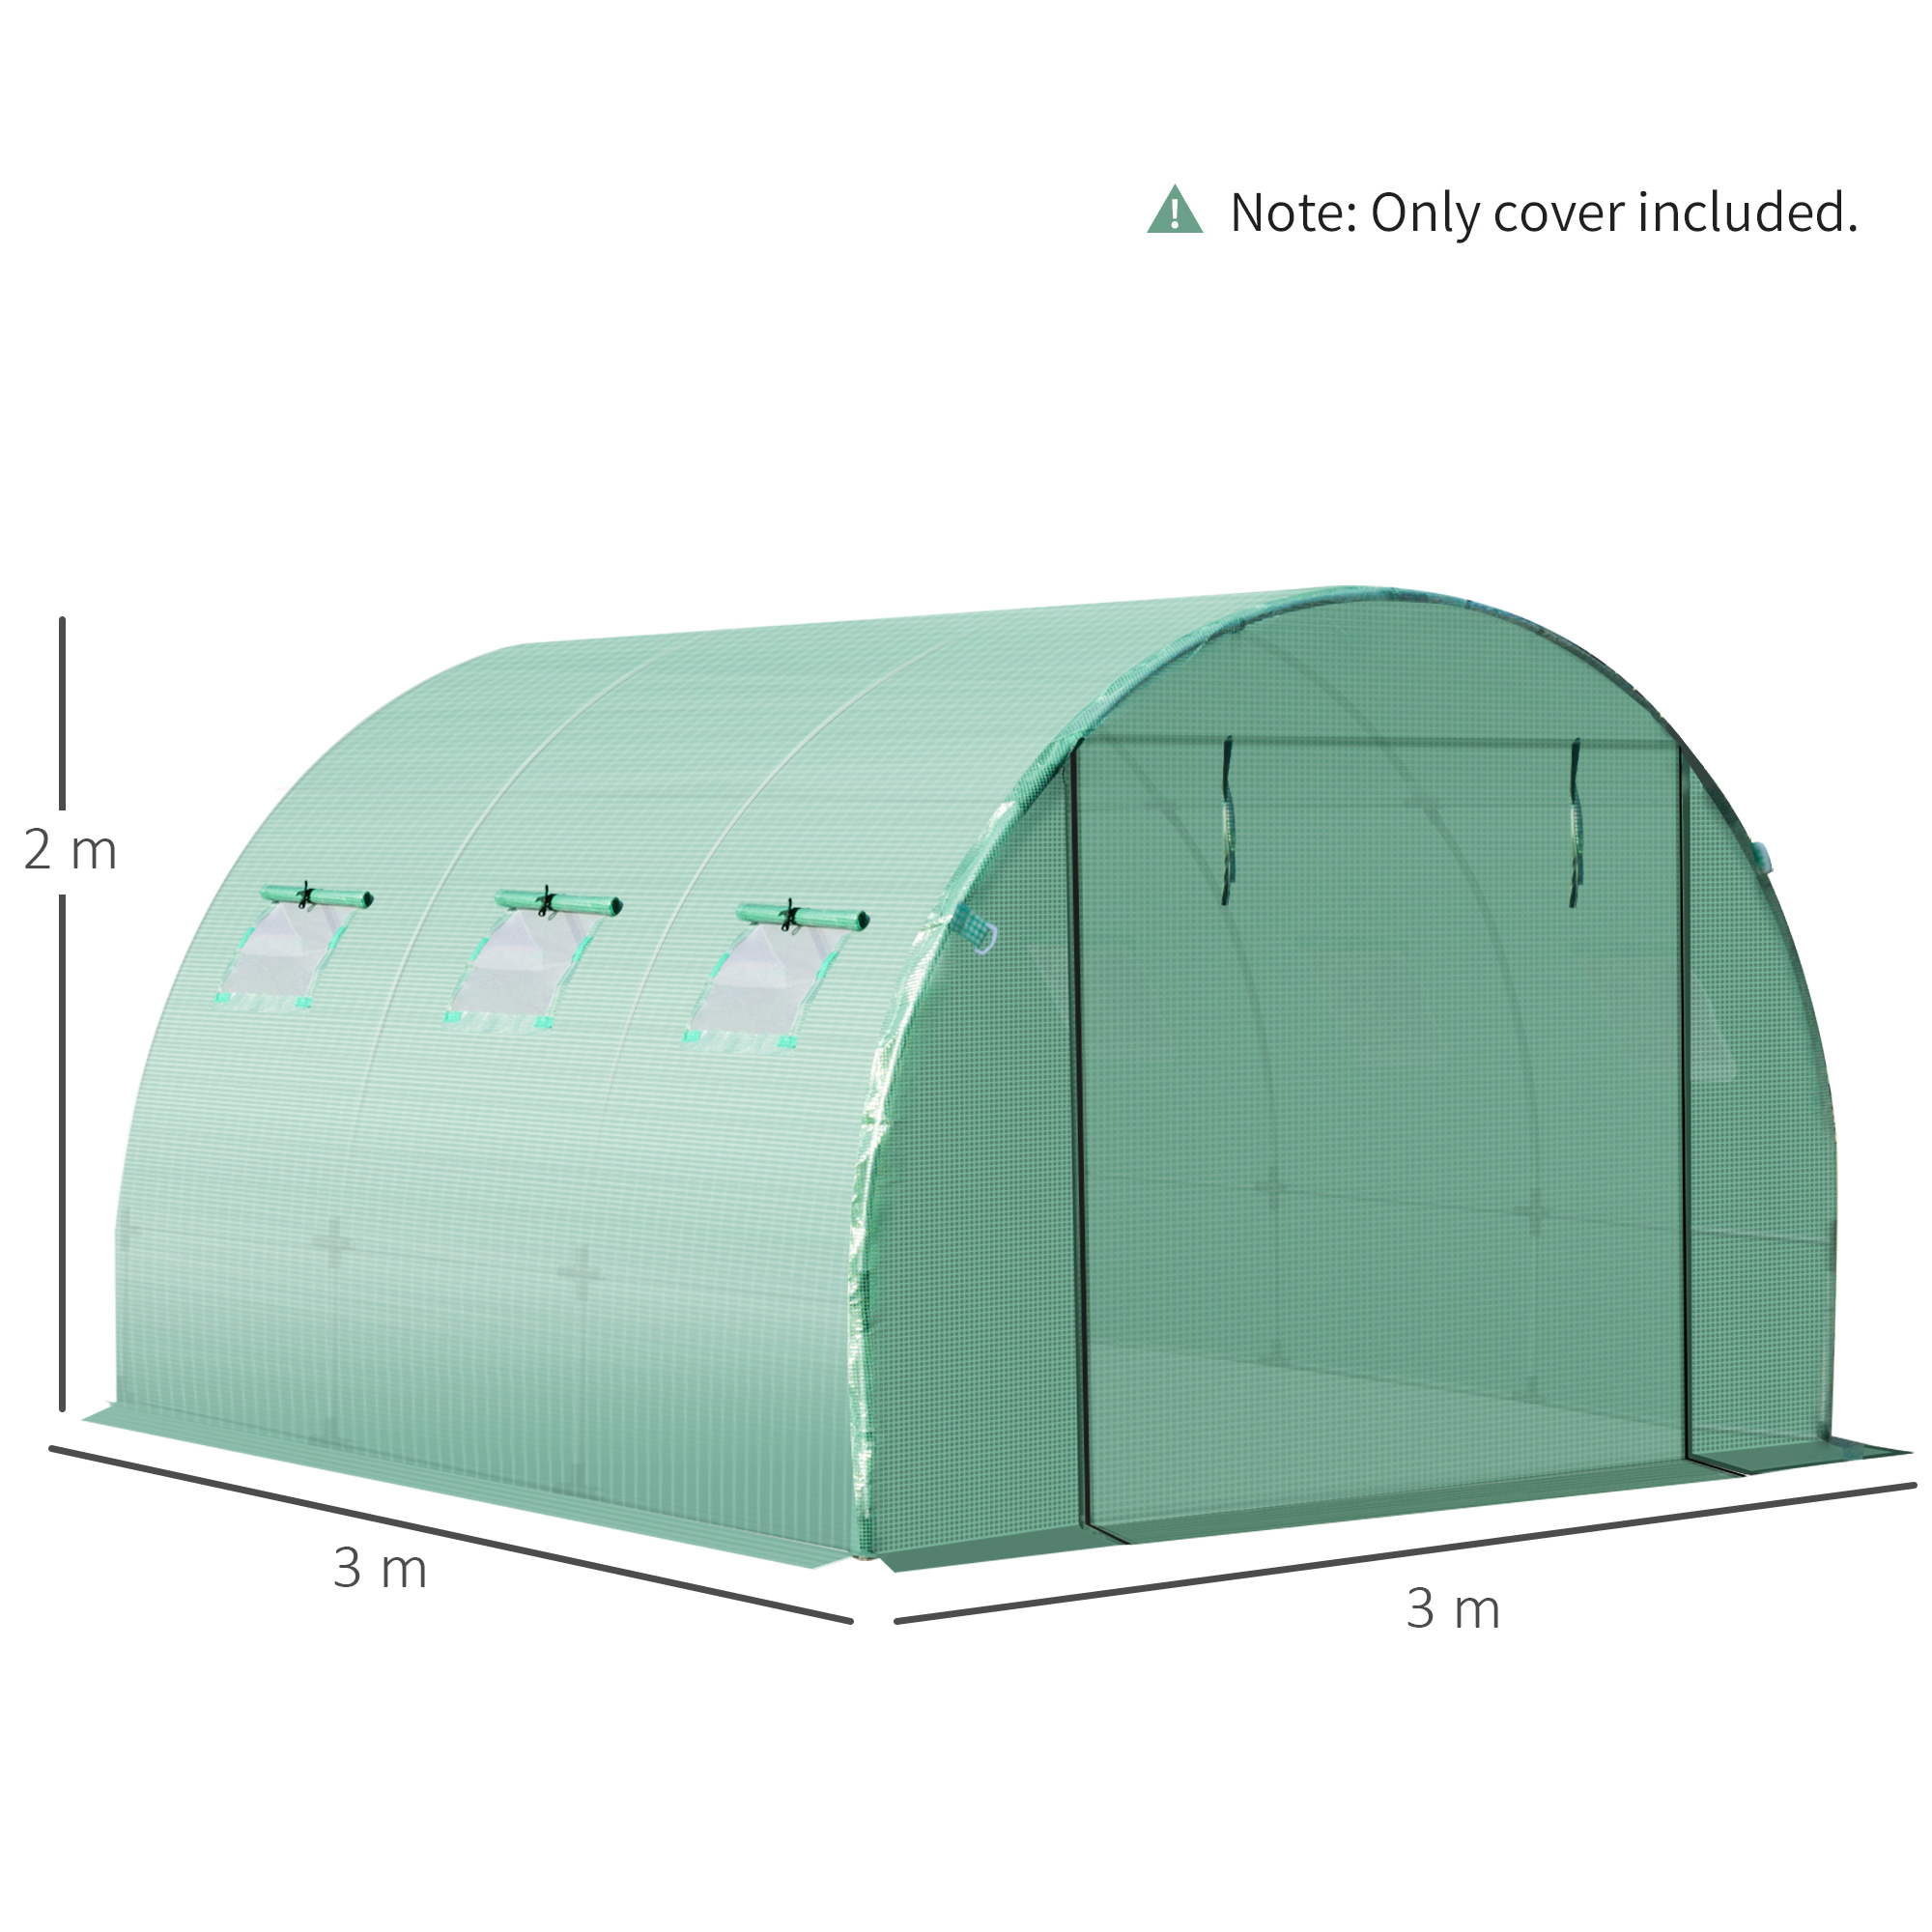 Indexbild 11 - Greenhouse-Replacement-Cover-ONLY-for-Tunnel-Walk-in-Greenhouse